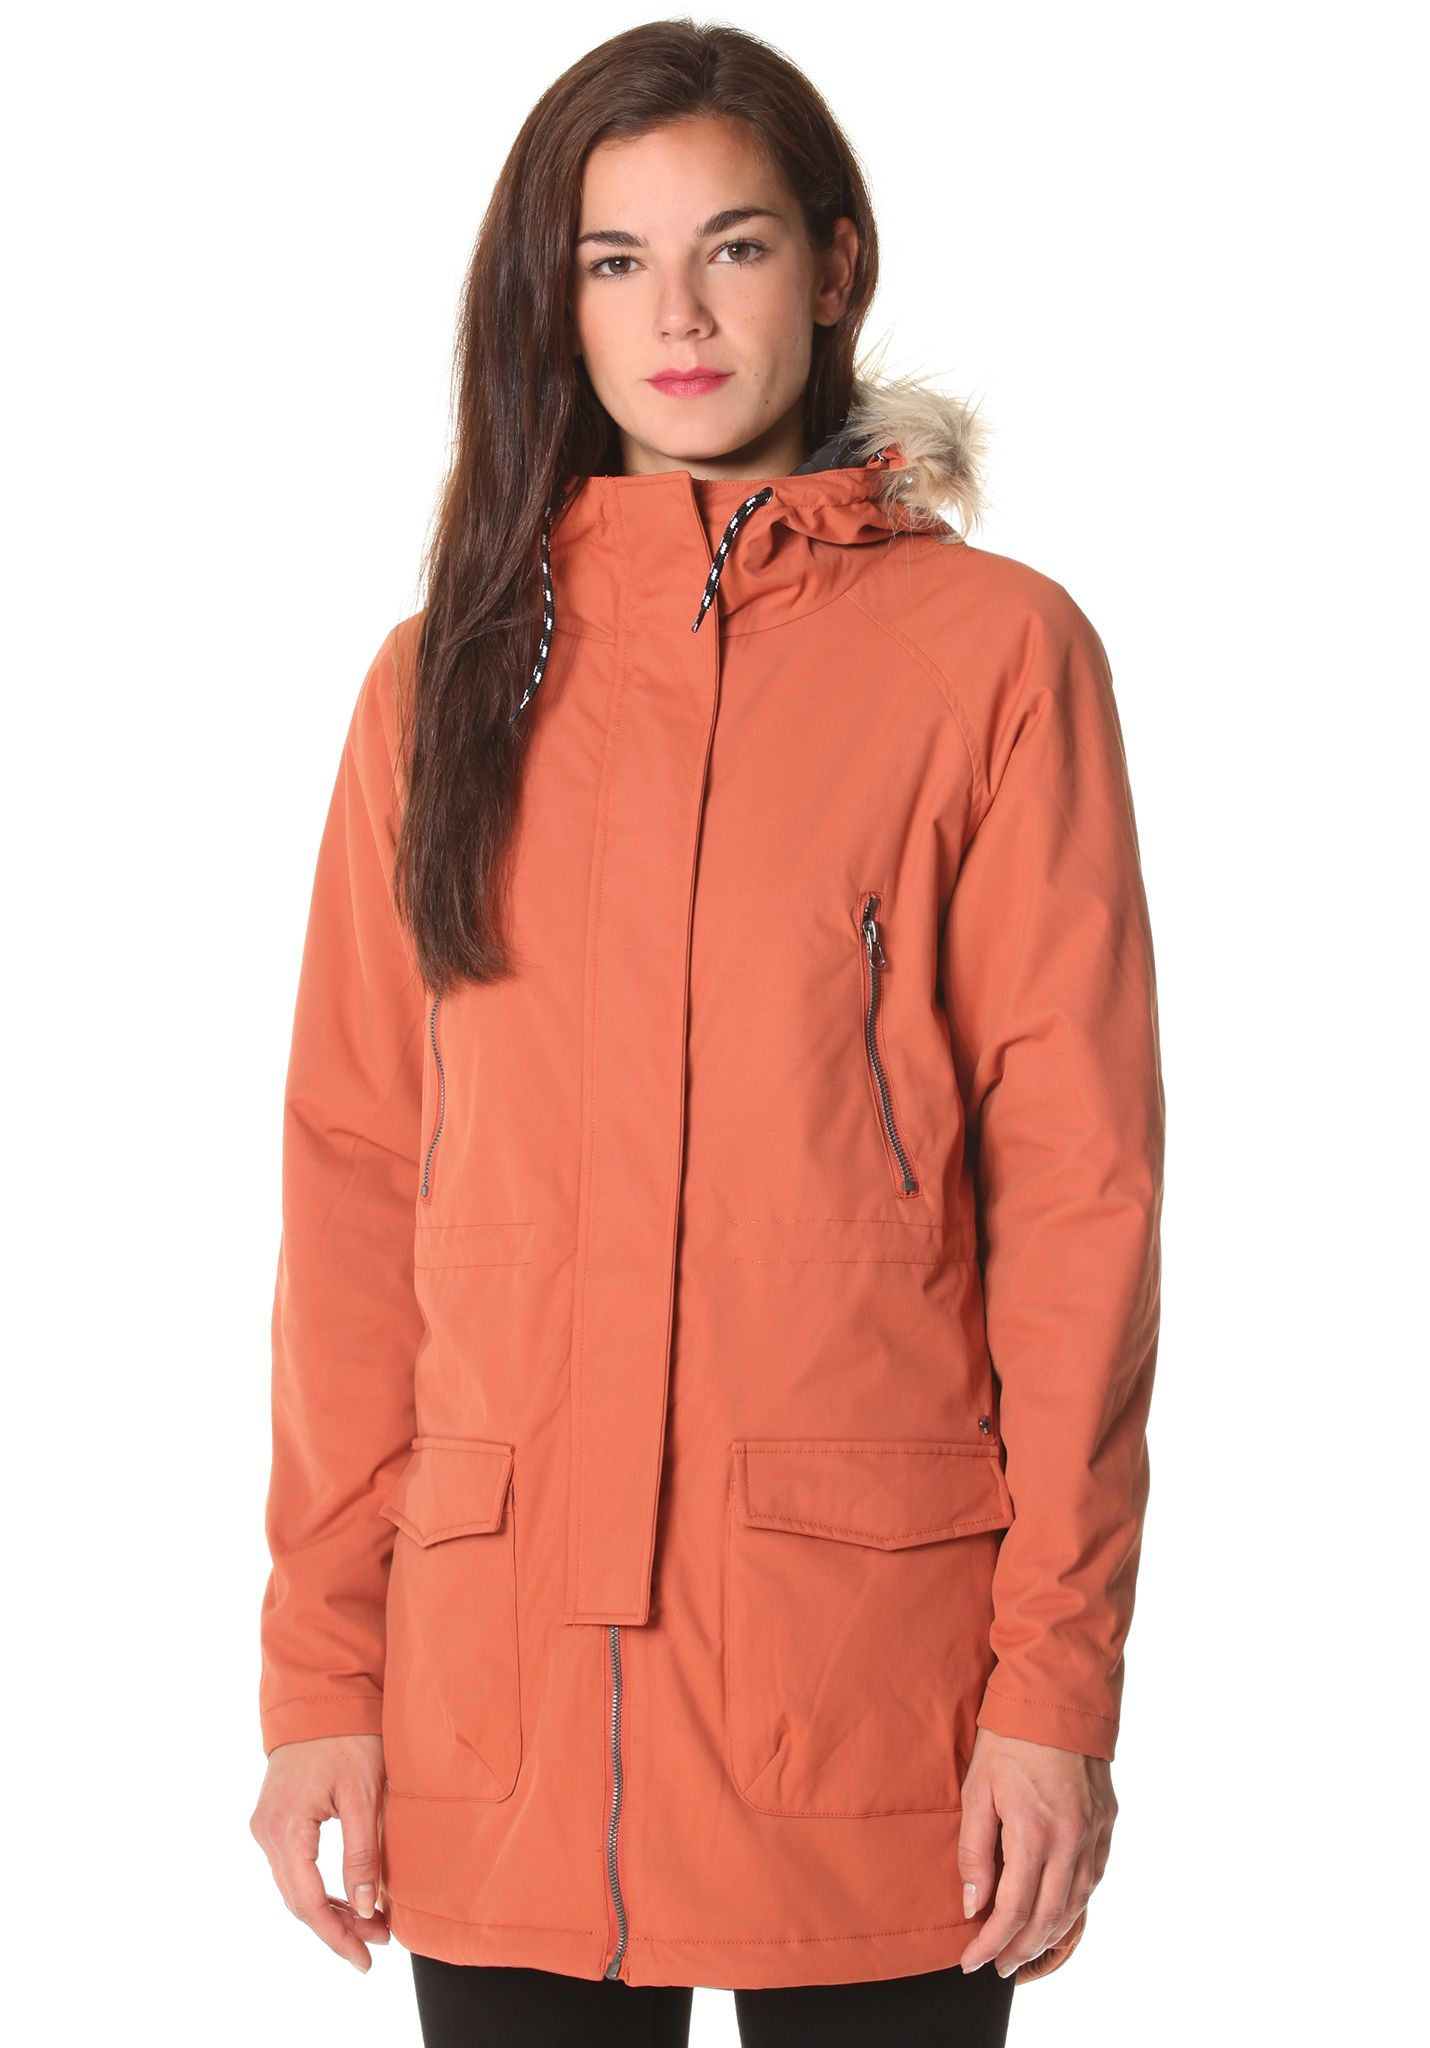 NIKITA Taylor - Jacket for Women - Orange - Planet Sports